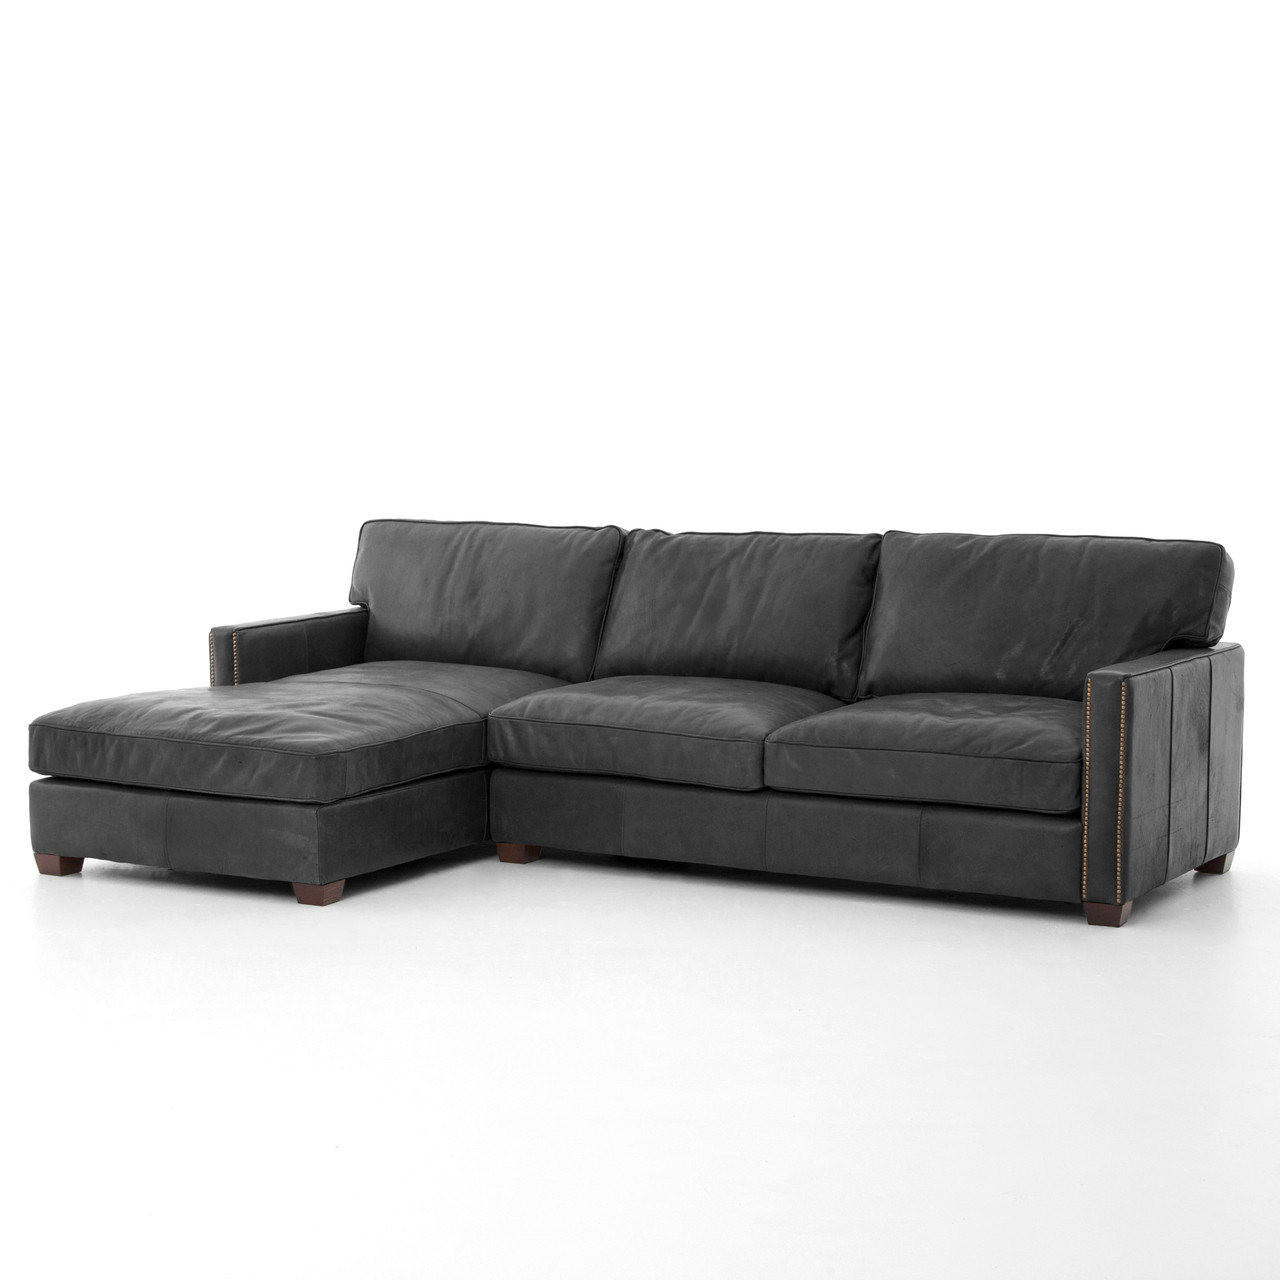 Larkin vintage black leather sectional sofa with chaise for Black leather chaise sofa